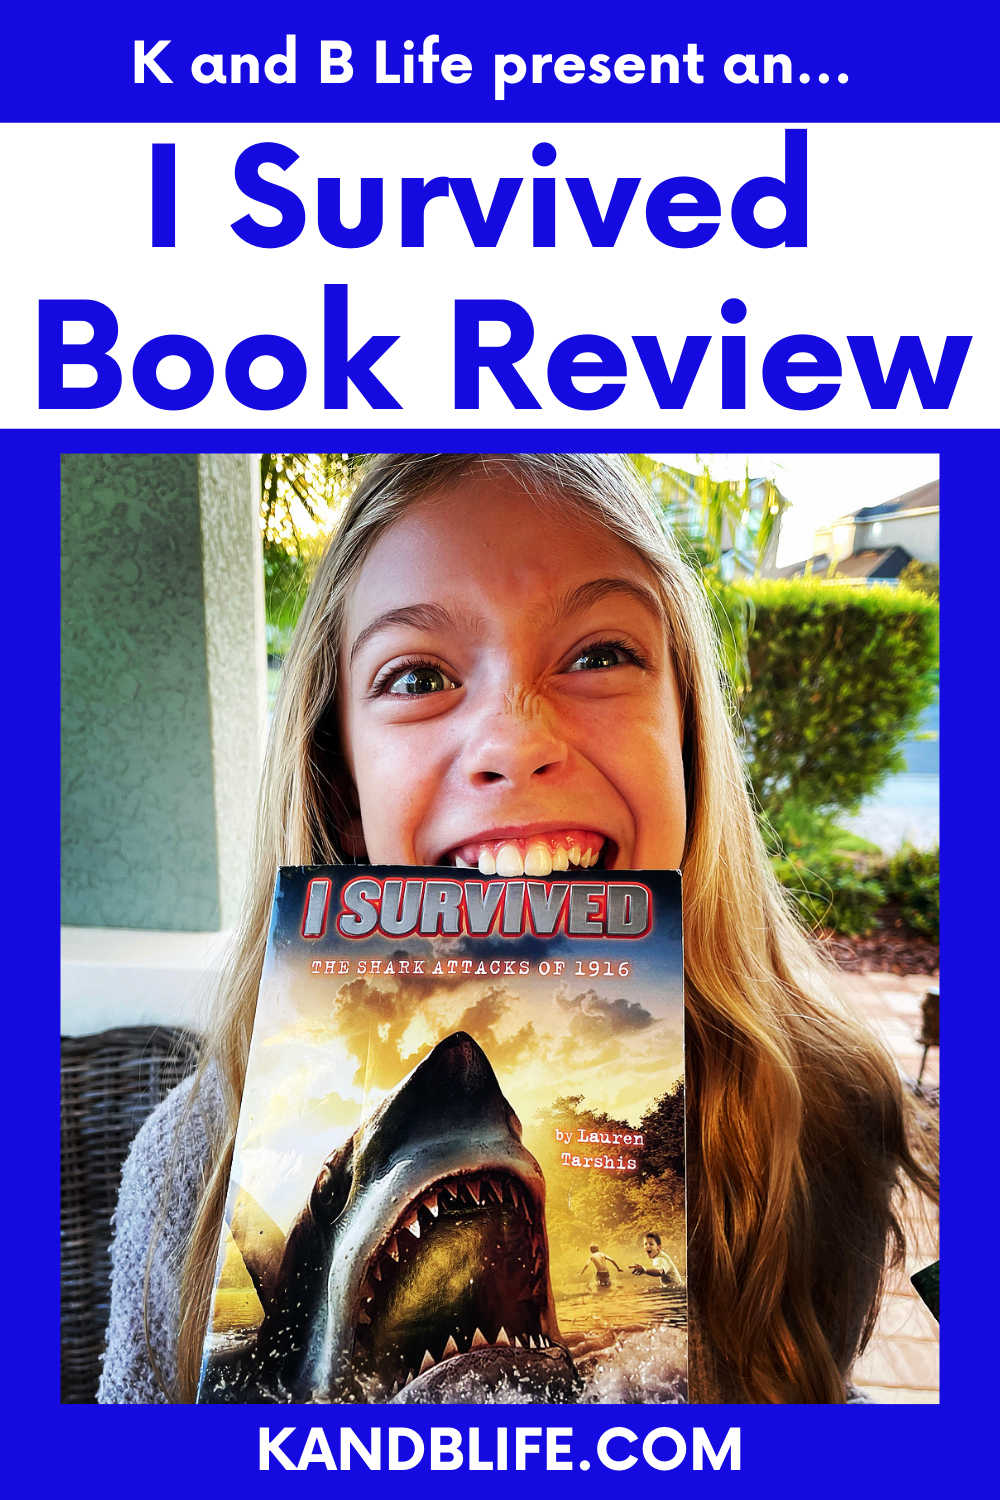 A picture of a girl biting the book, I Survived: The Shark Attacks of 1916